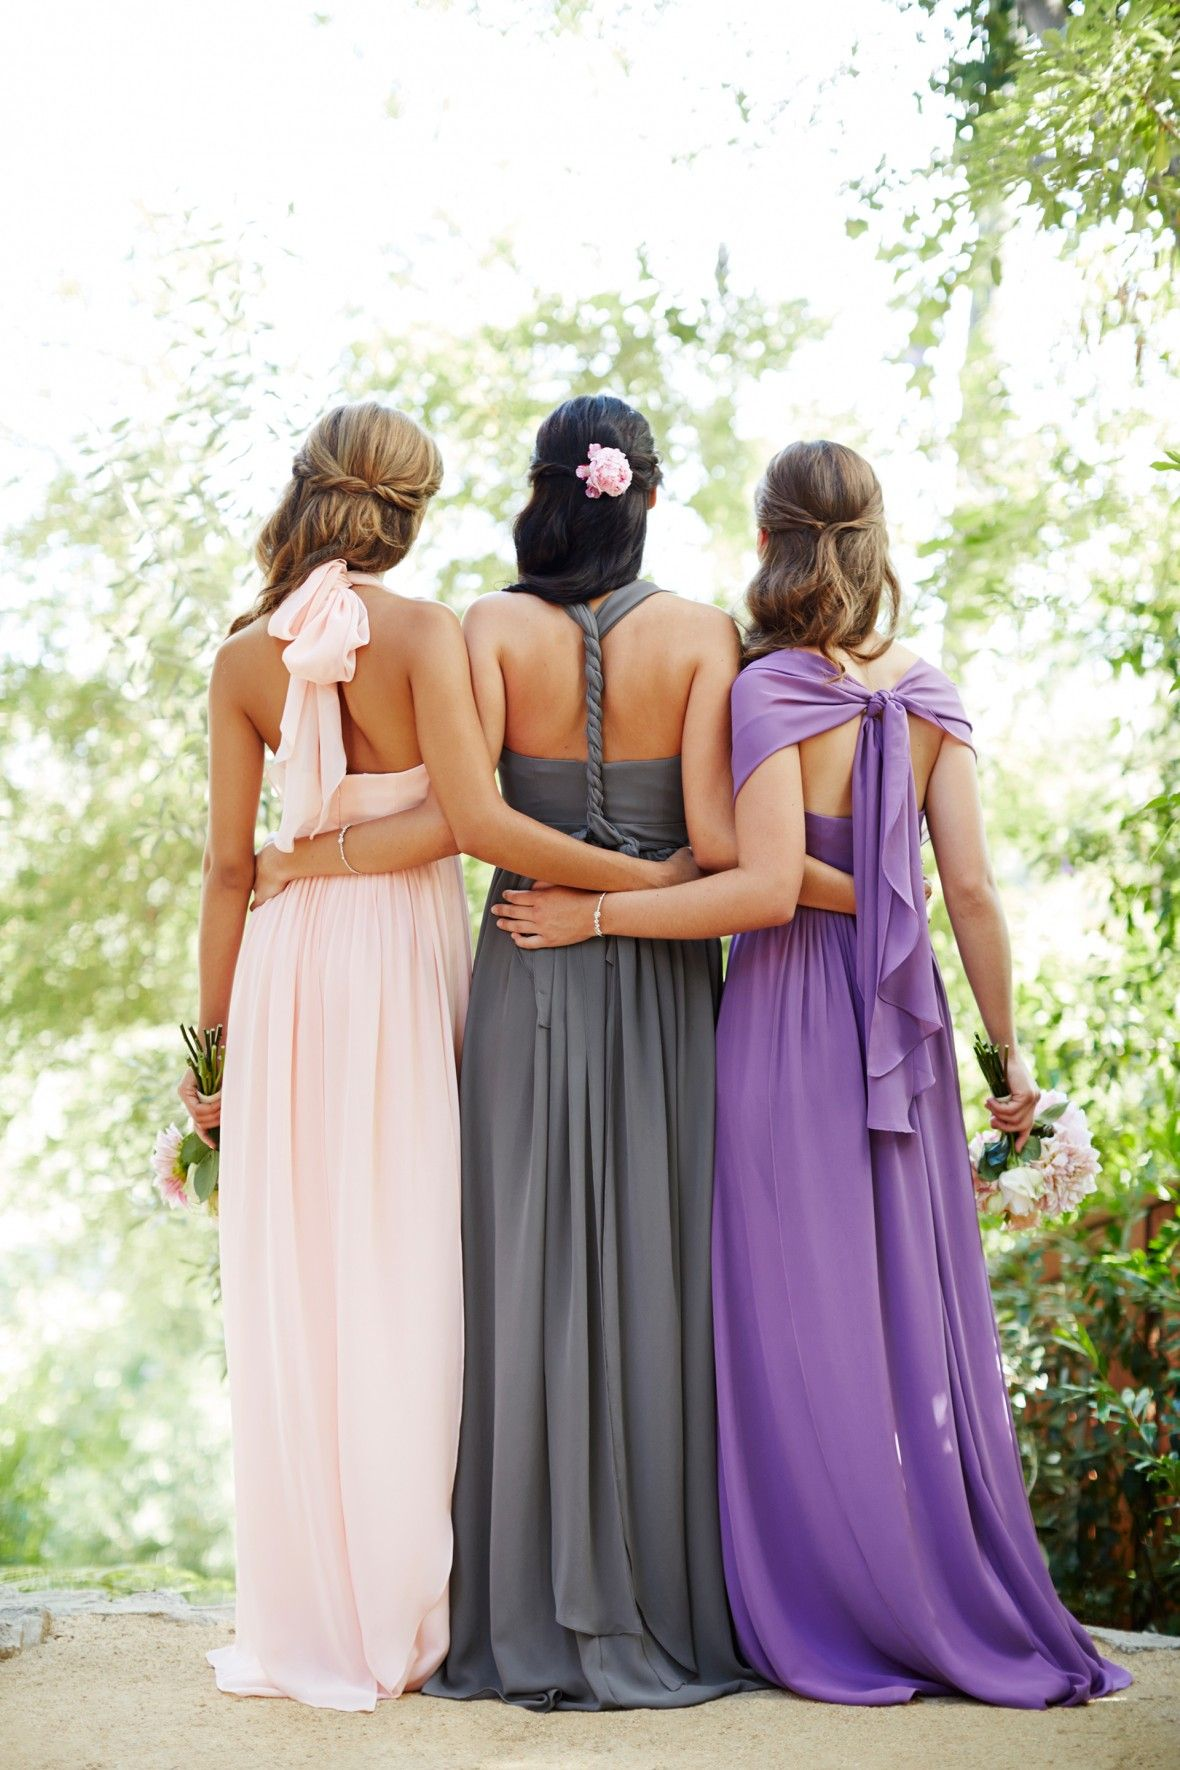 Rent your bridesmaids dress with vow to be chic creative wedding rent your bridesmaids dress with vow to be chic ombrellifo Images